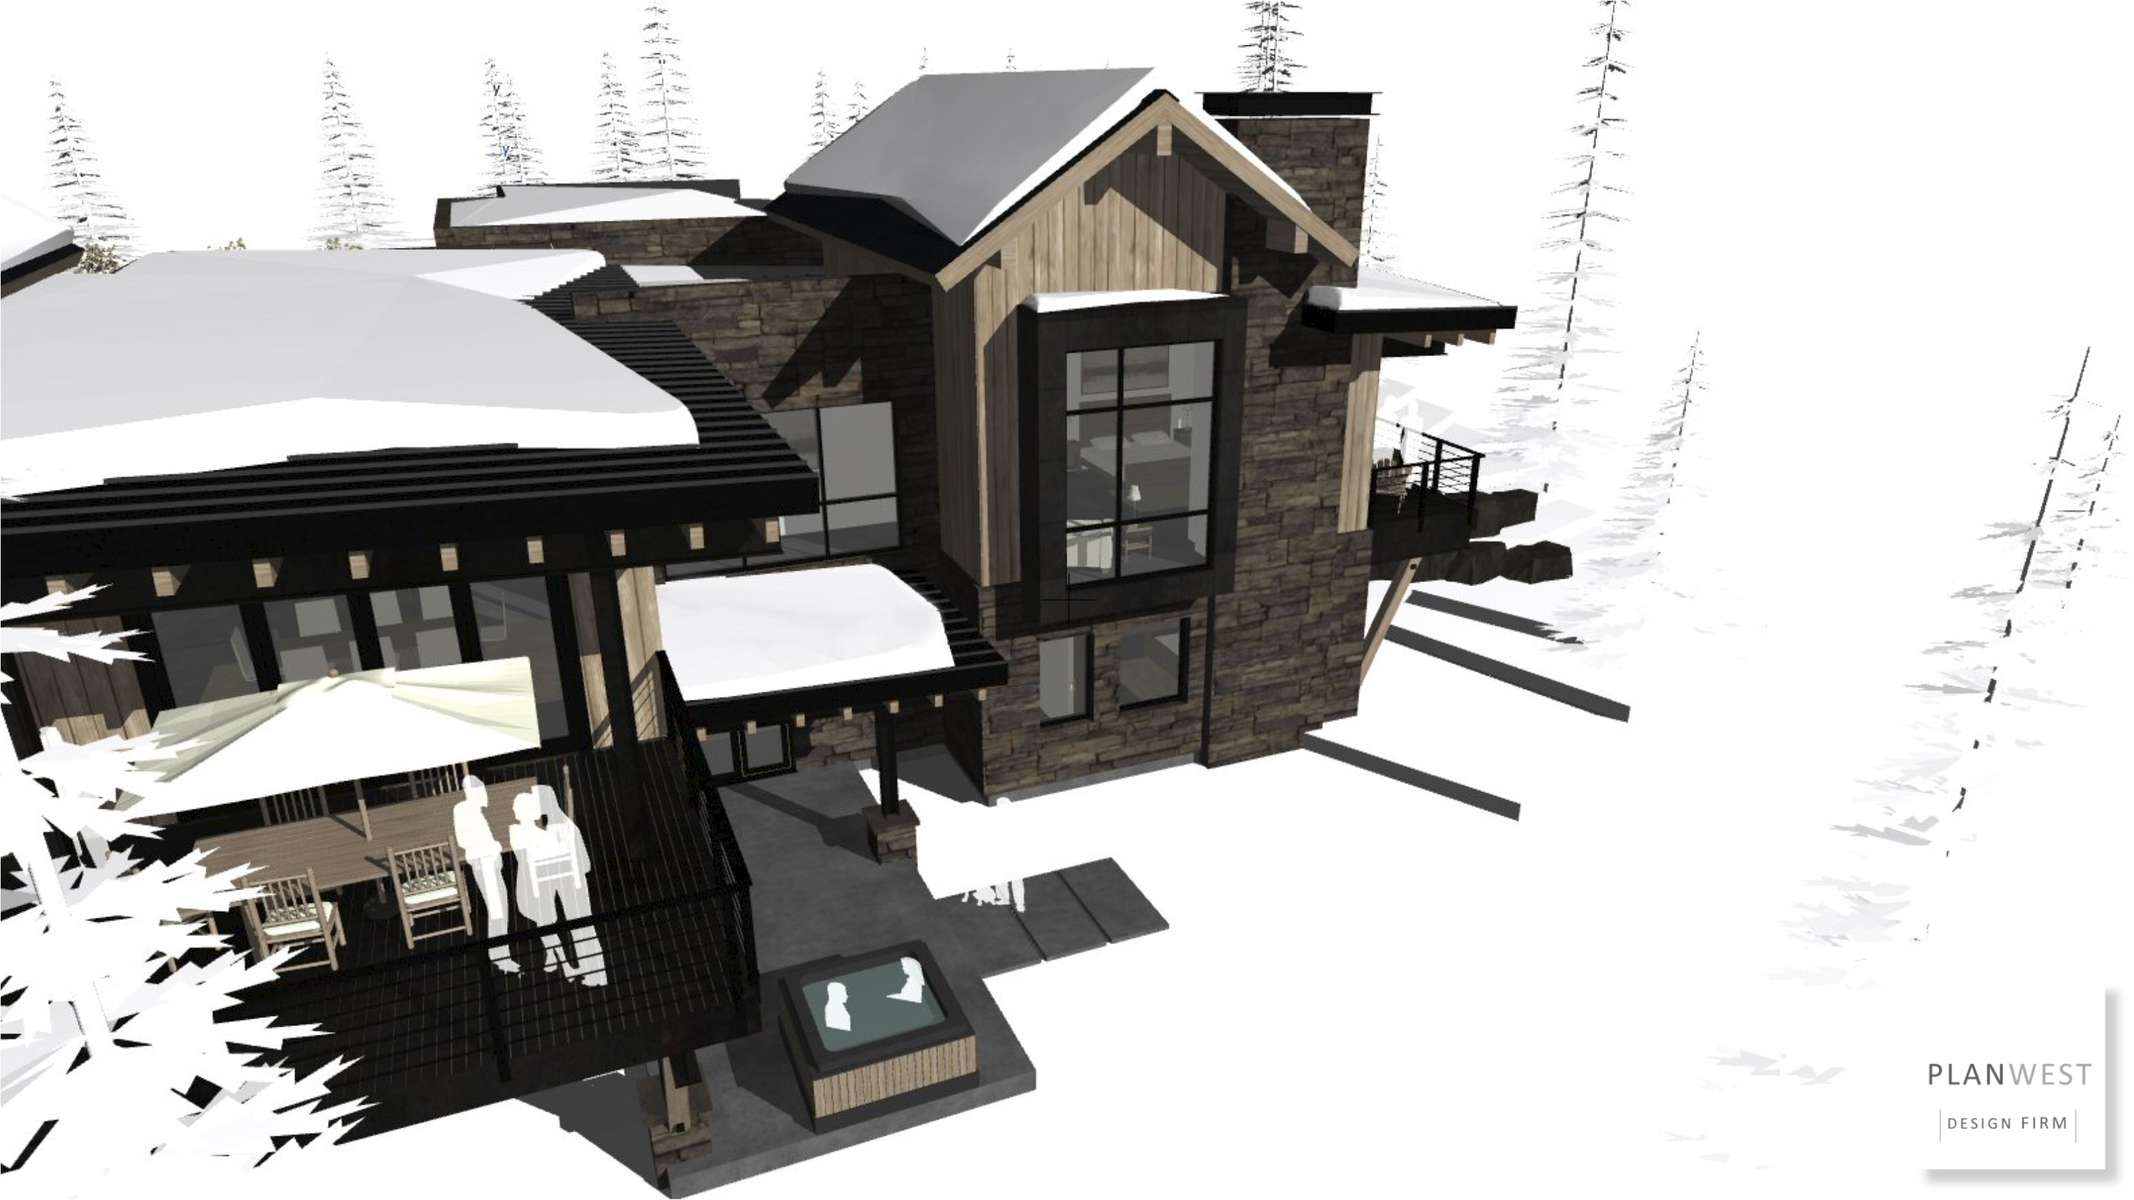 Plan-West-Design-Firm_Projects-in-process-1532